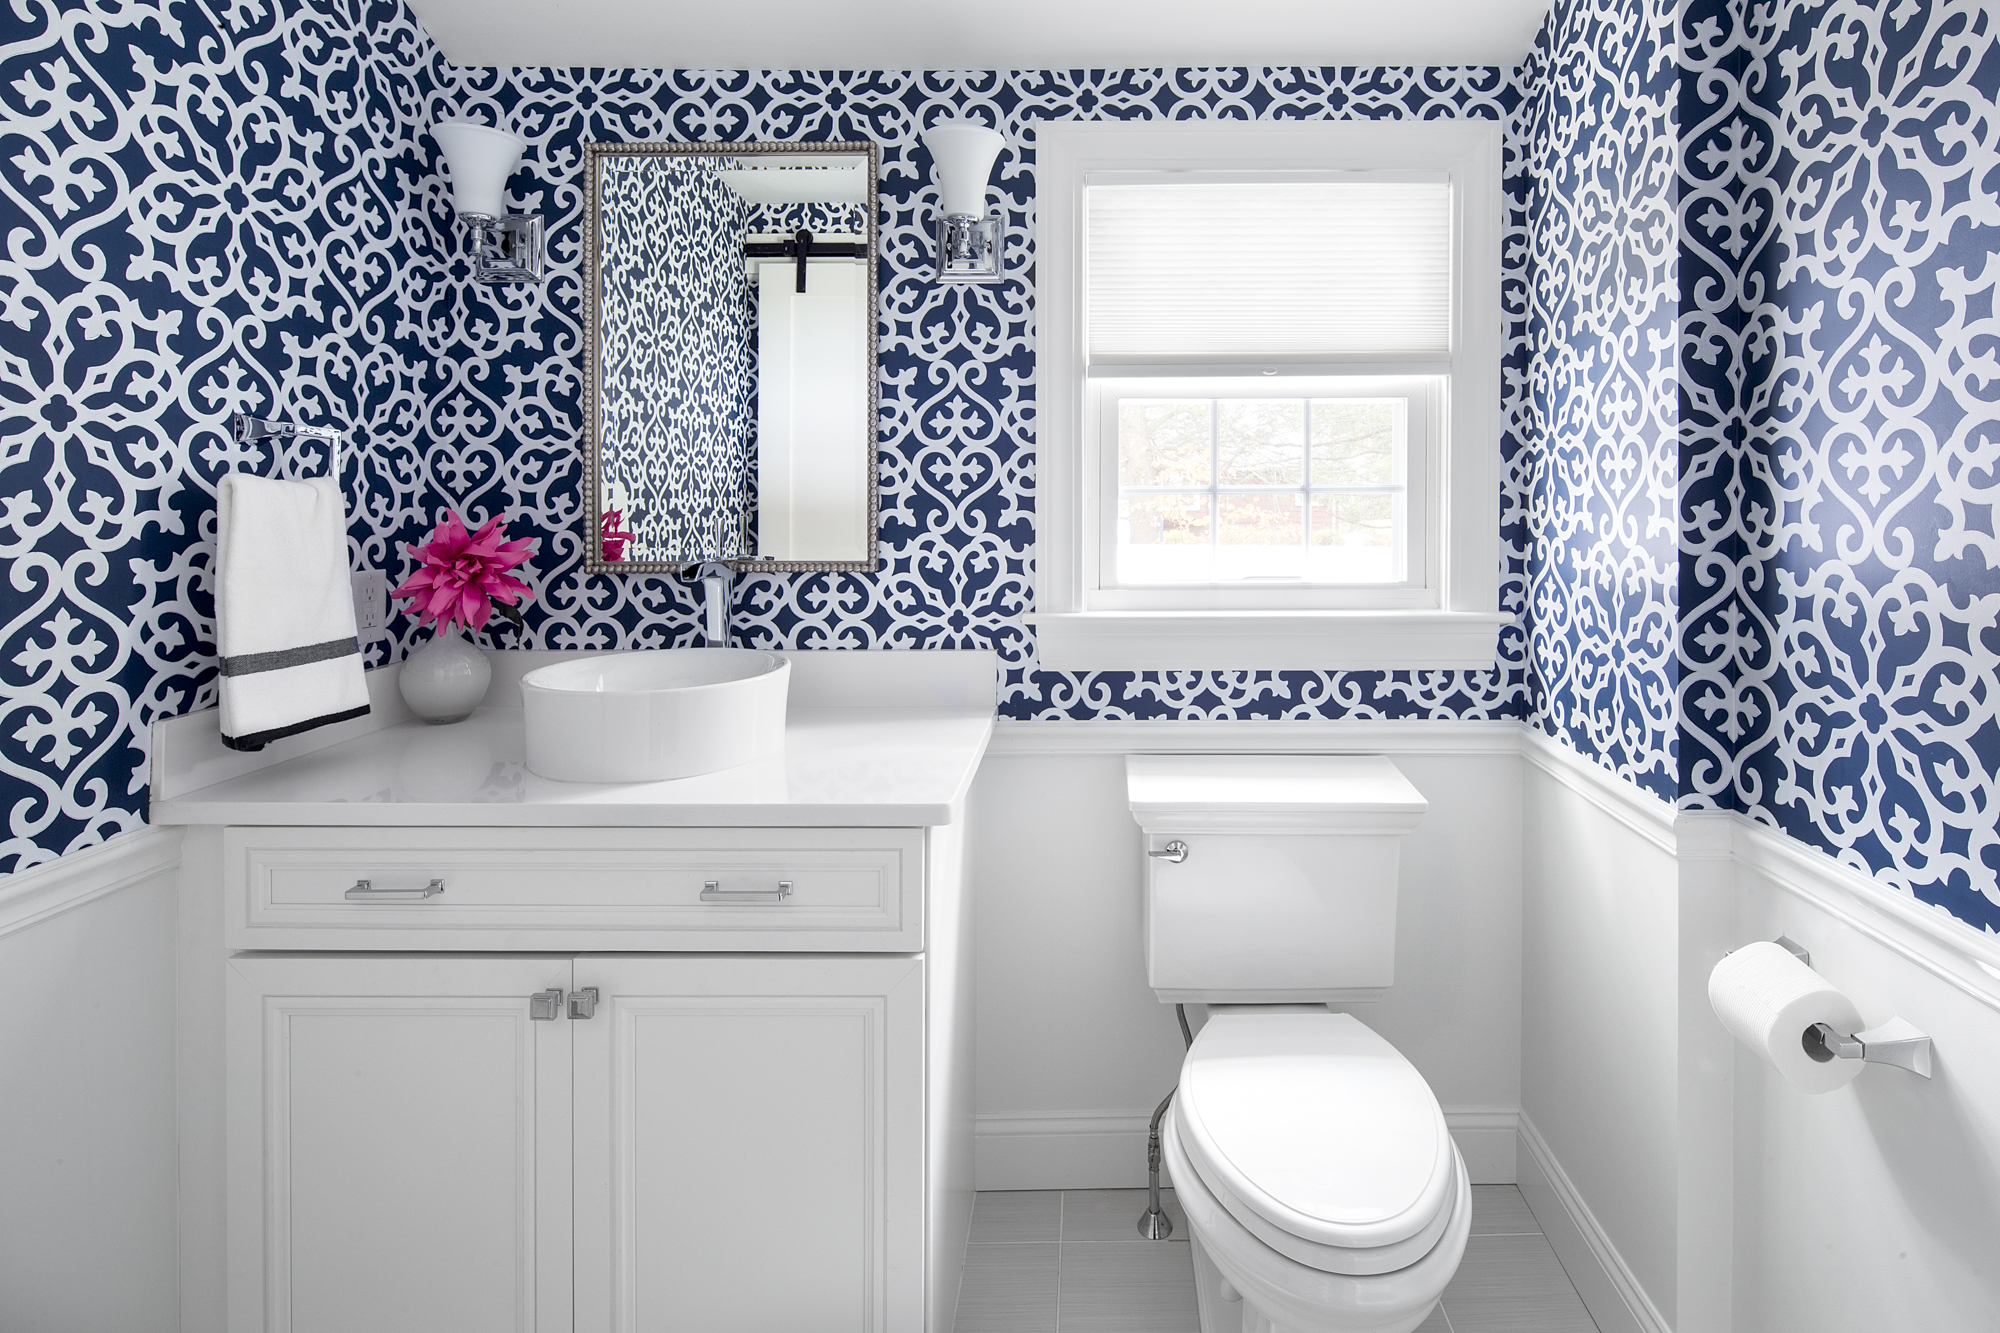 Blue Wallpaper in Bathroom